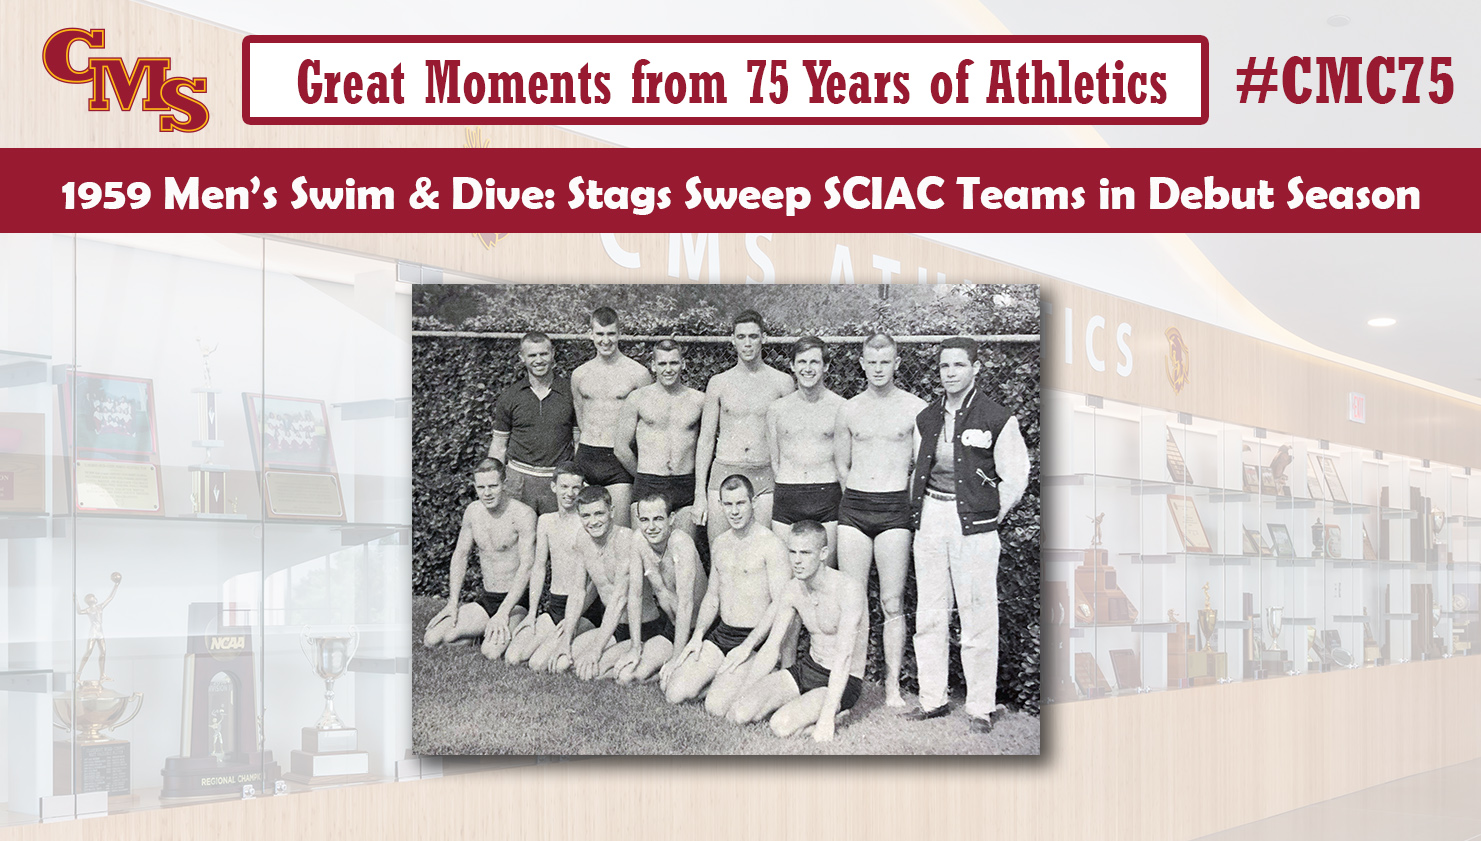 A team shot from the 1959 Swim and Dive team. Words over the photo read: Great Moments from 75 Years of Athletics. 1959 Swim & Dive: Stags Sweep SCIAC Teams in Debut Season